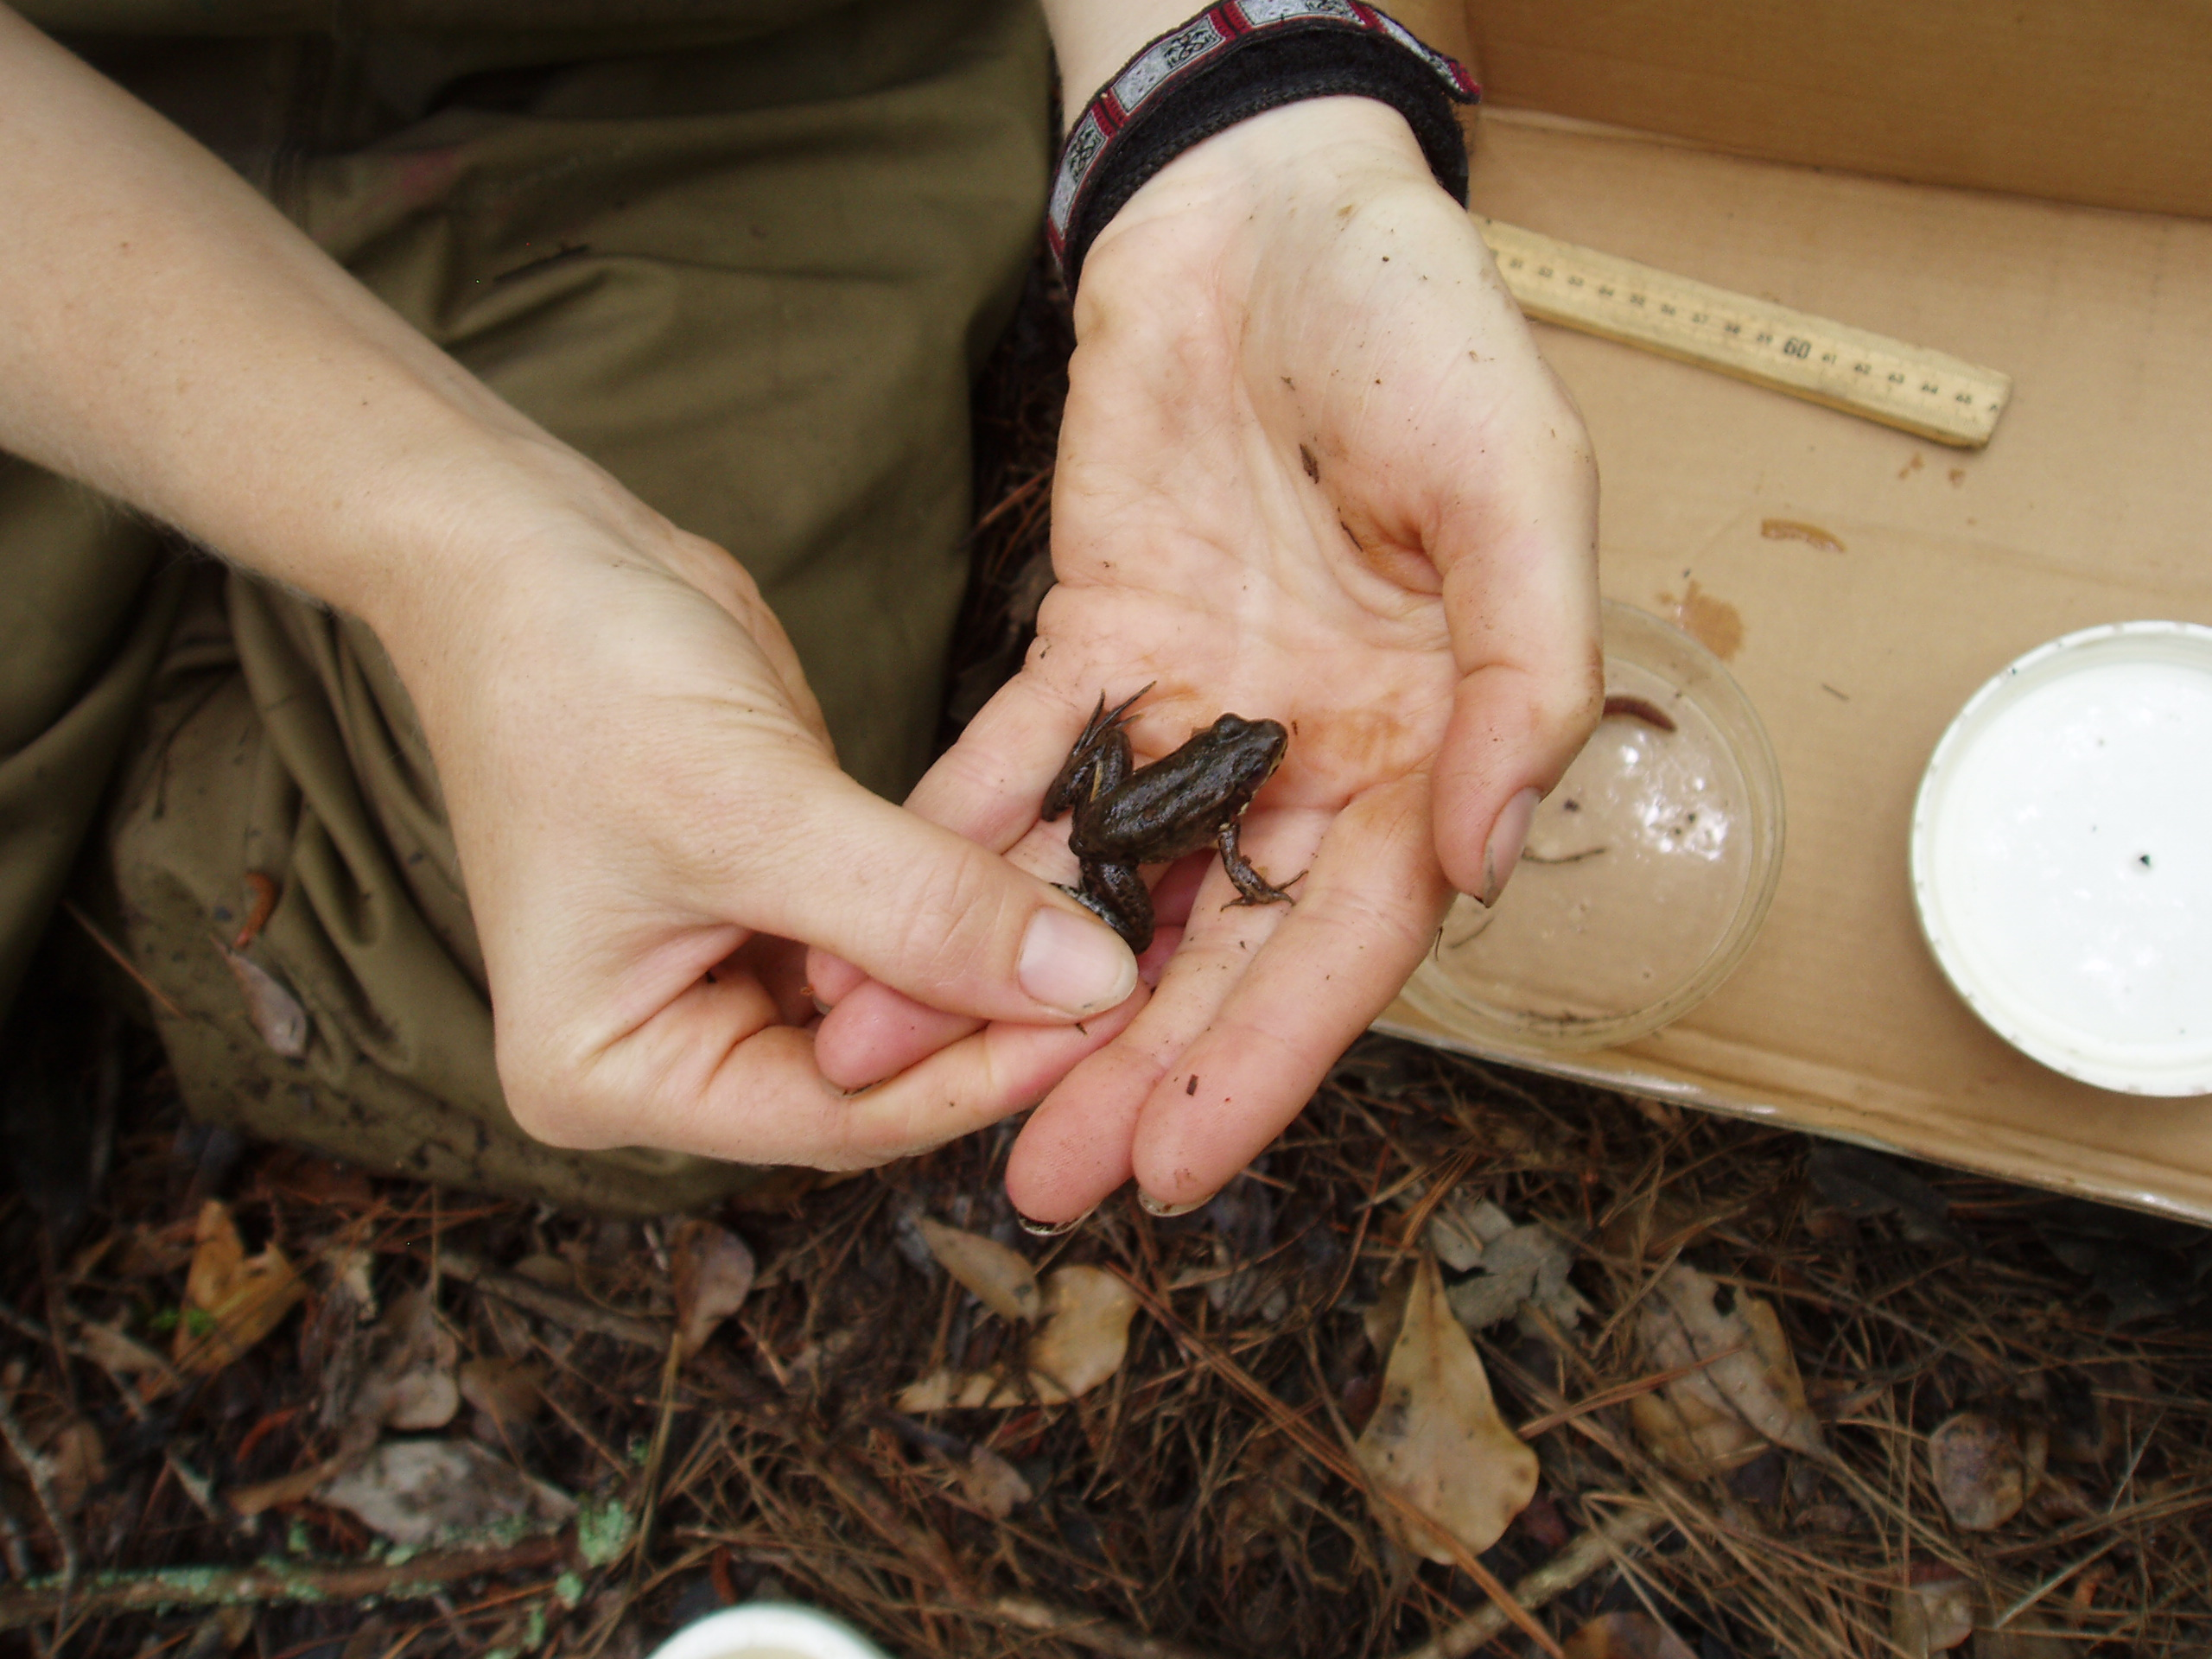 Amphibians were surveyed as part of the Level 3 detailed assessments